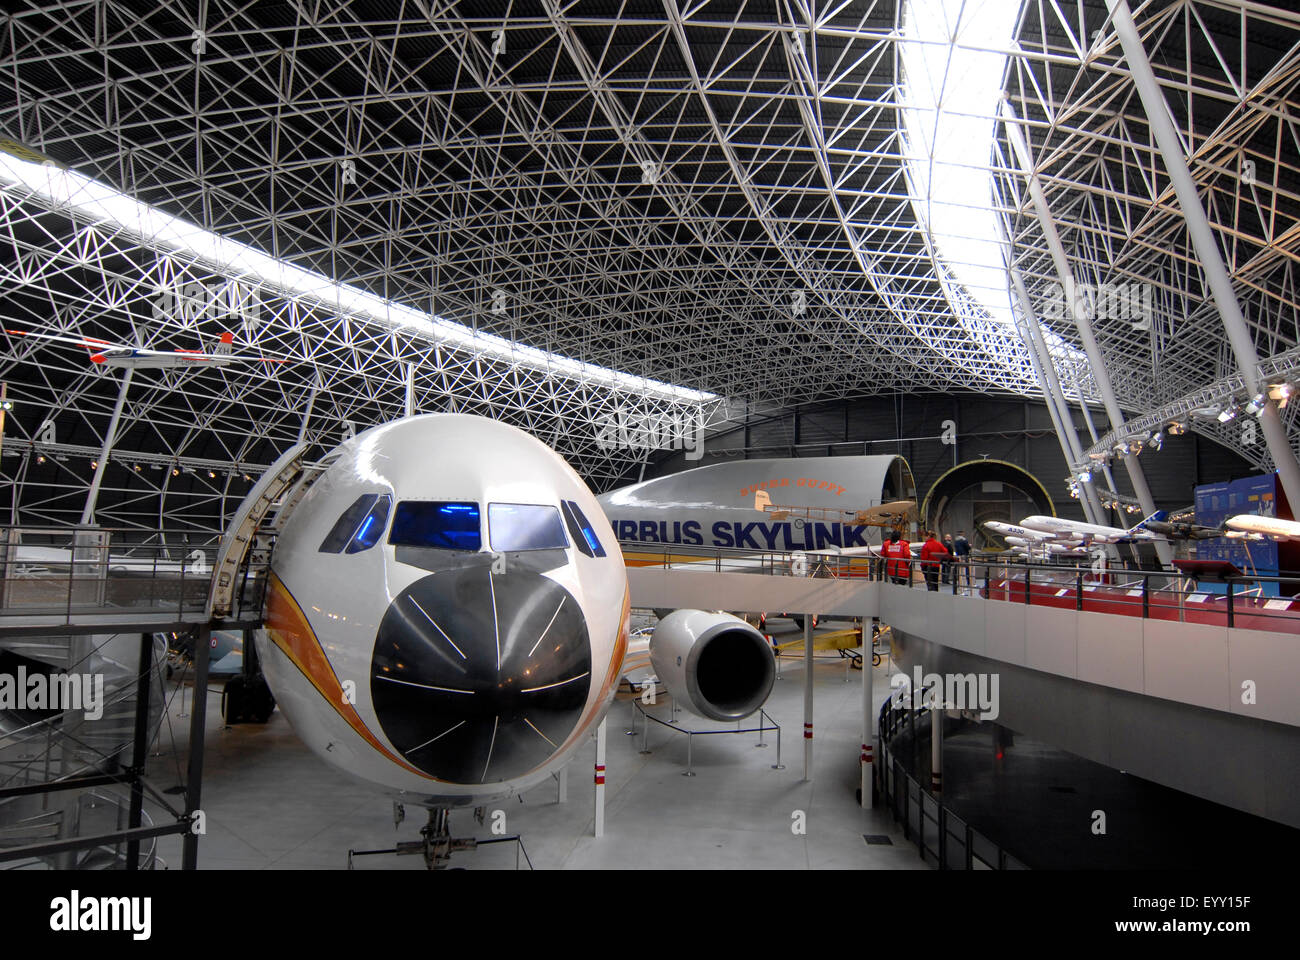 Musée Aeroscopia, Aeronautical Museum, Toulouse, France. Collection of antiques aircrafts - Stock Image